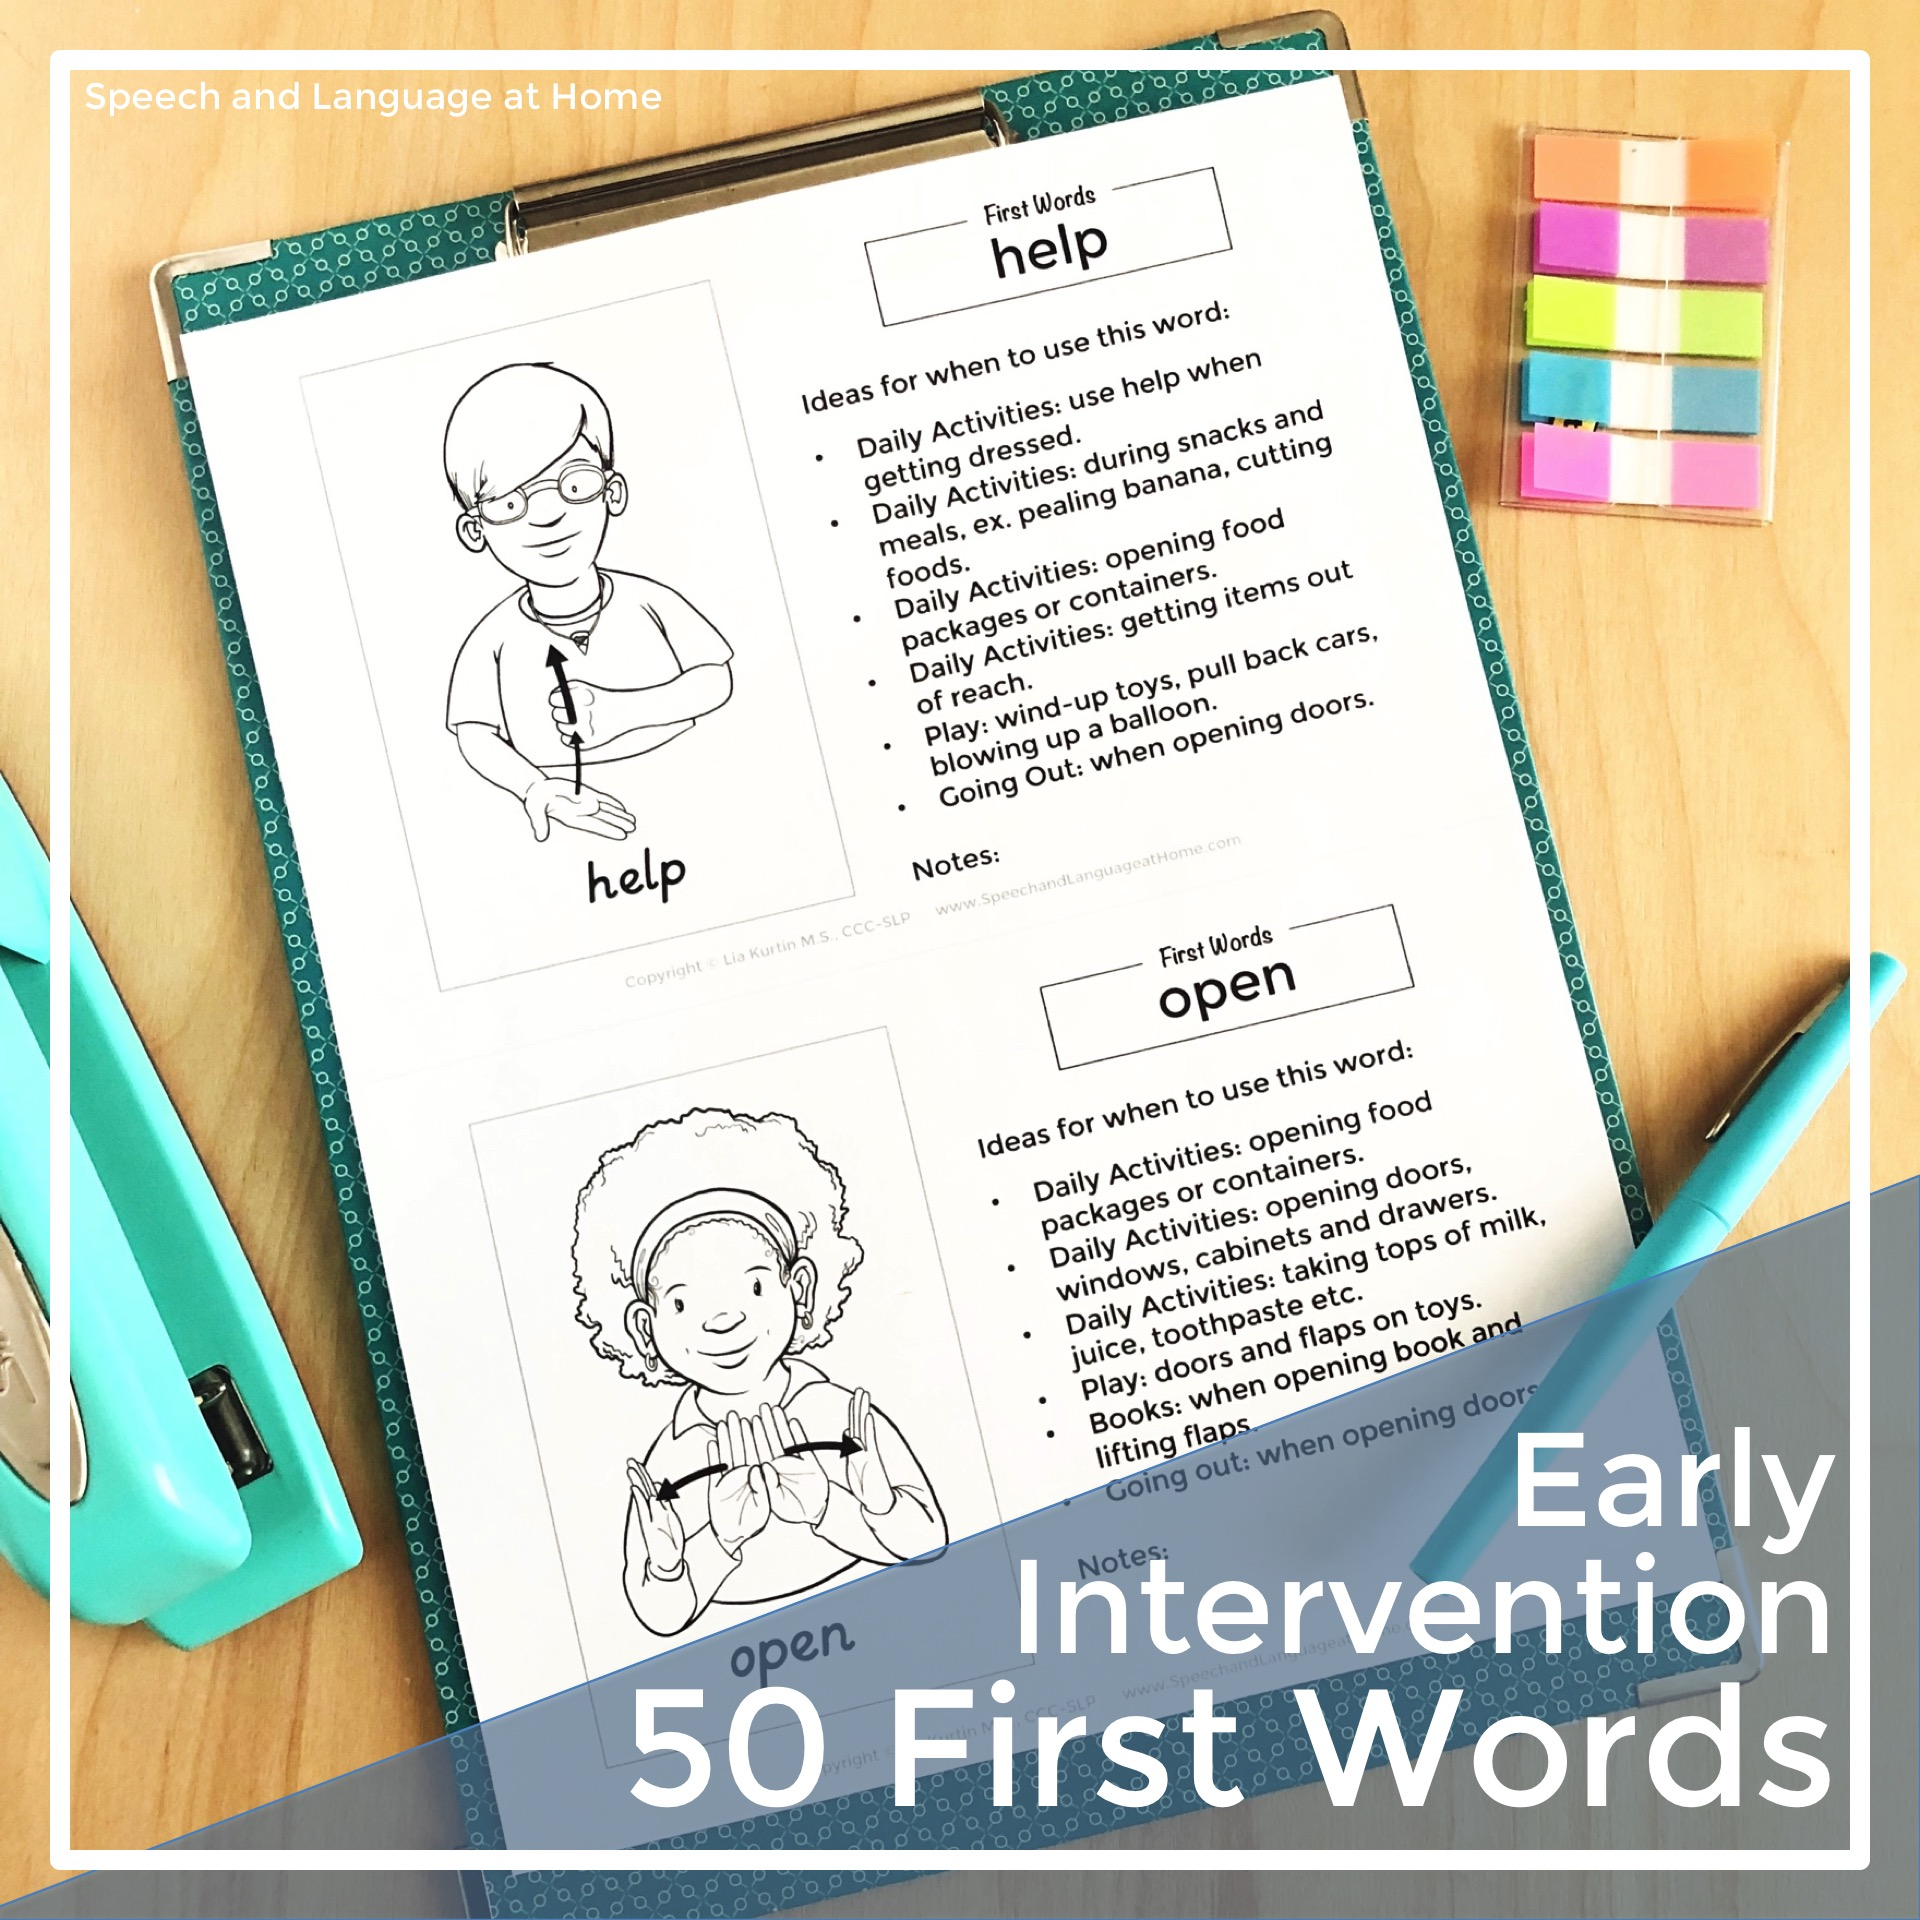 Early Intervention 50 First Words Speech therapy at home.jpg